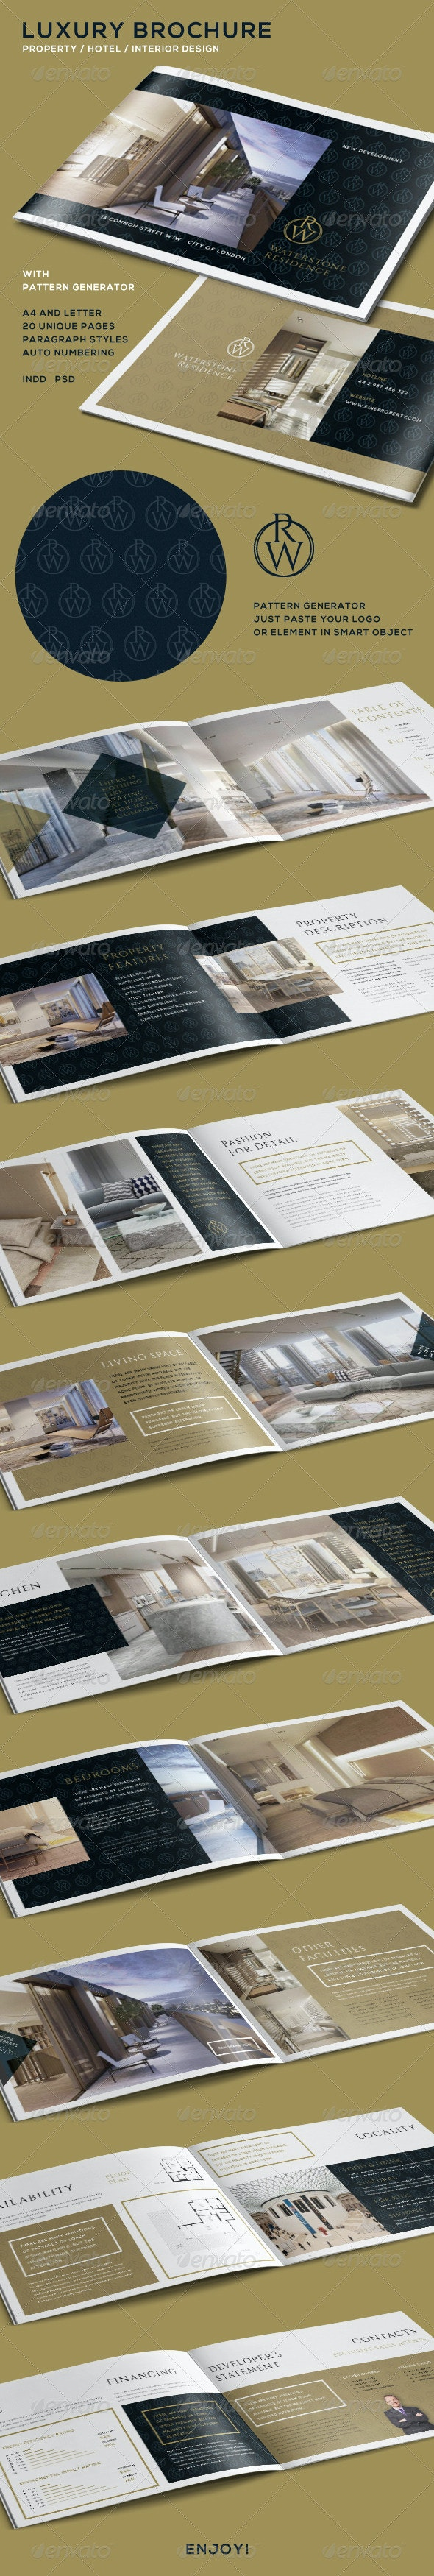 Luxury Brochure for Property - Hotel - Interior - Catalogs Brochures